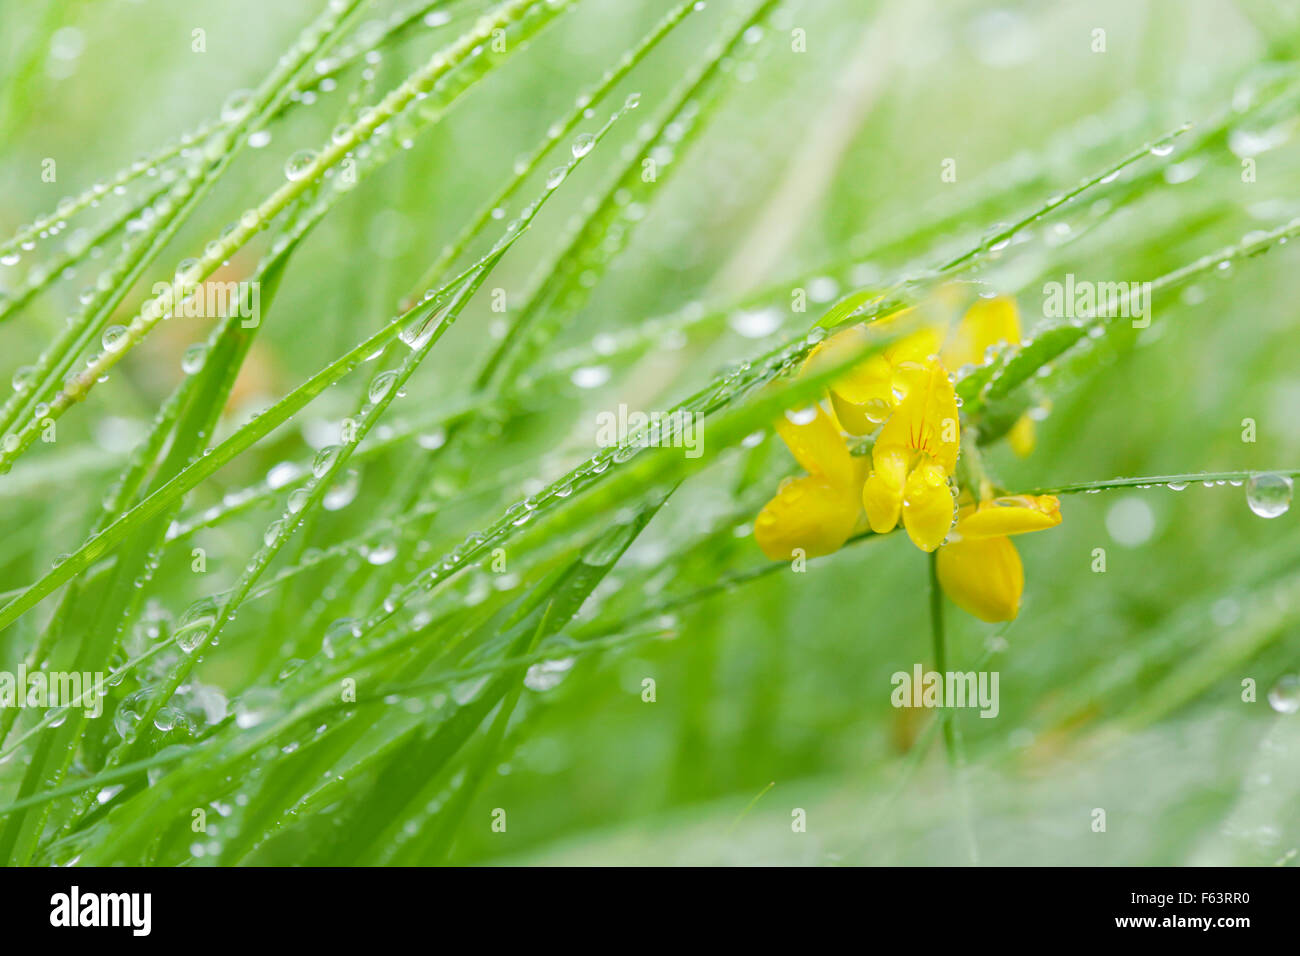 Yellow vetch flower stock photo 89824308 alamy yellow vetch flower mightylinksfo